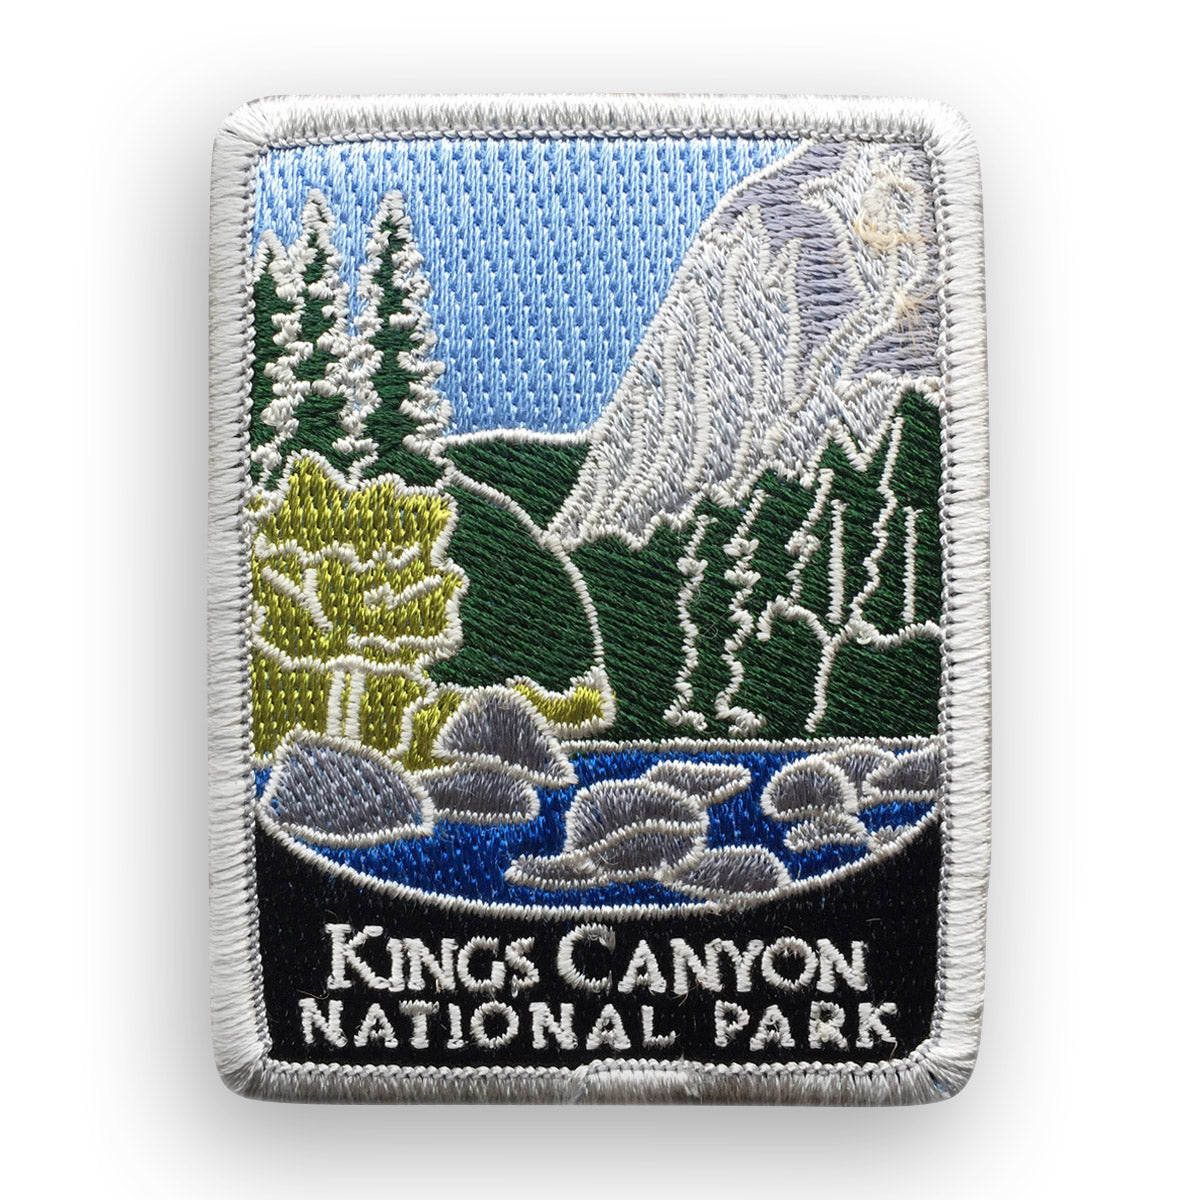 Kings Canyon National Park Traveler Patch